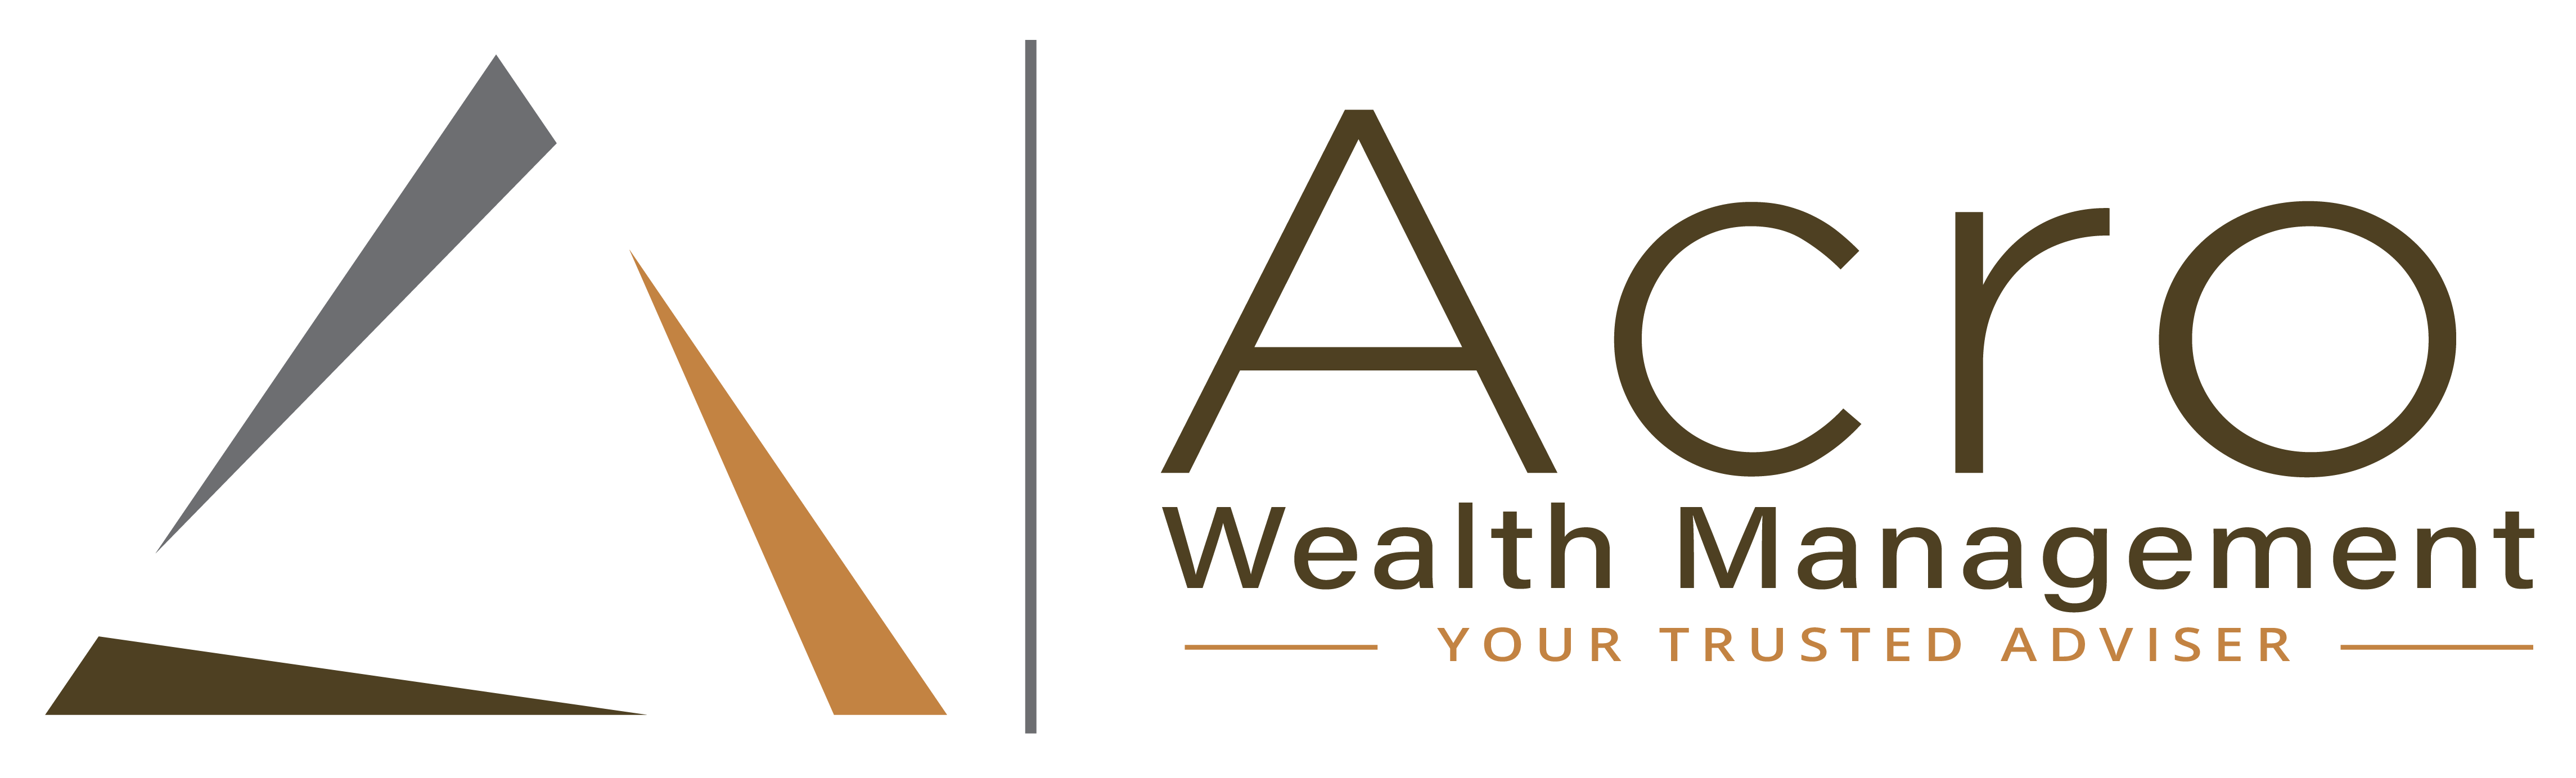 Acro Wealth Management